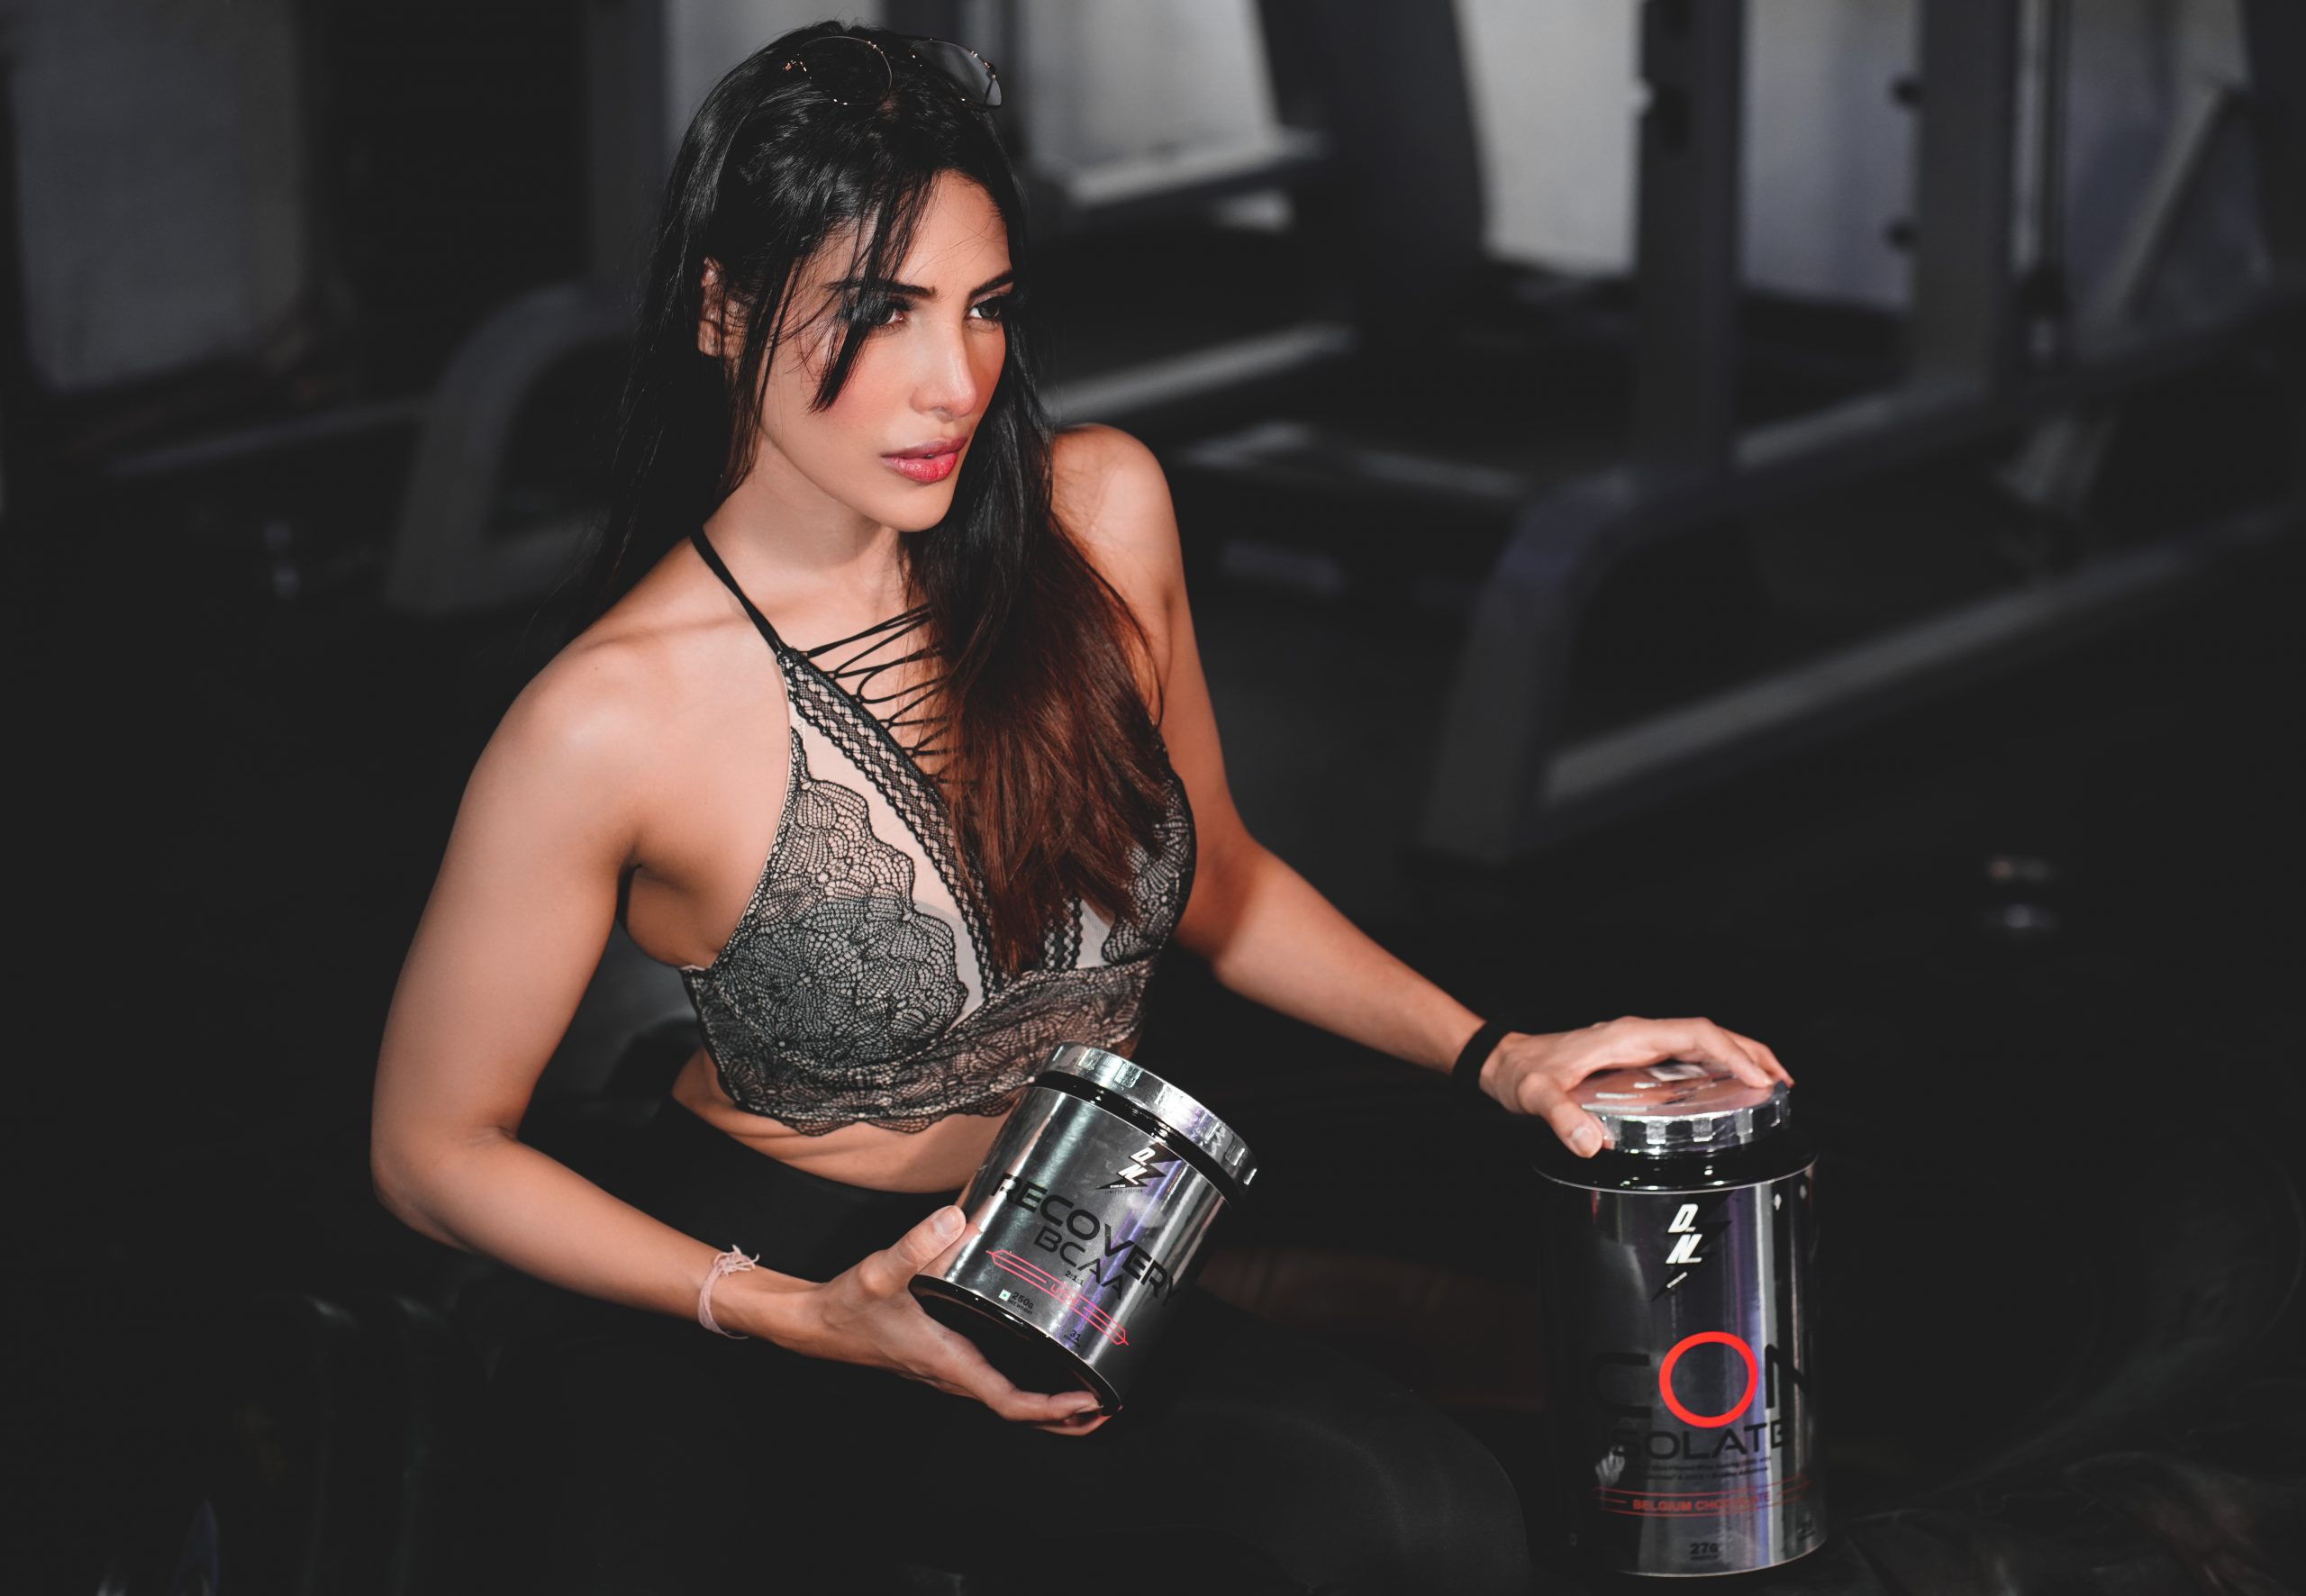 Female model posing with Supplement box